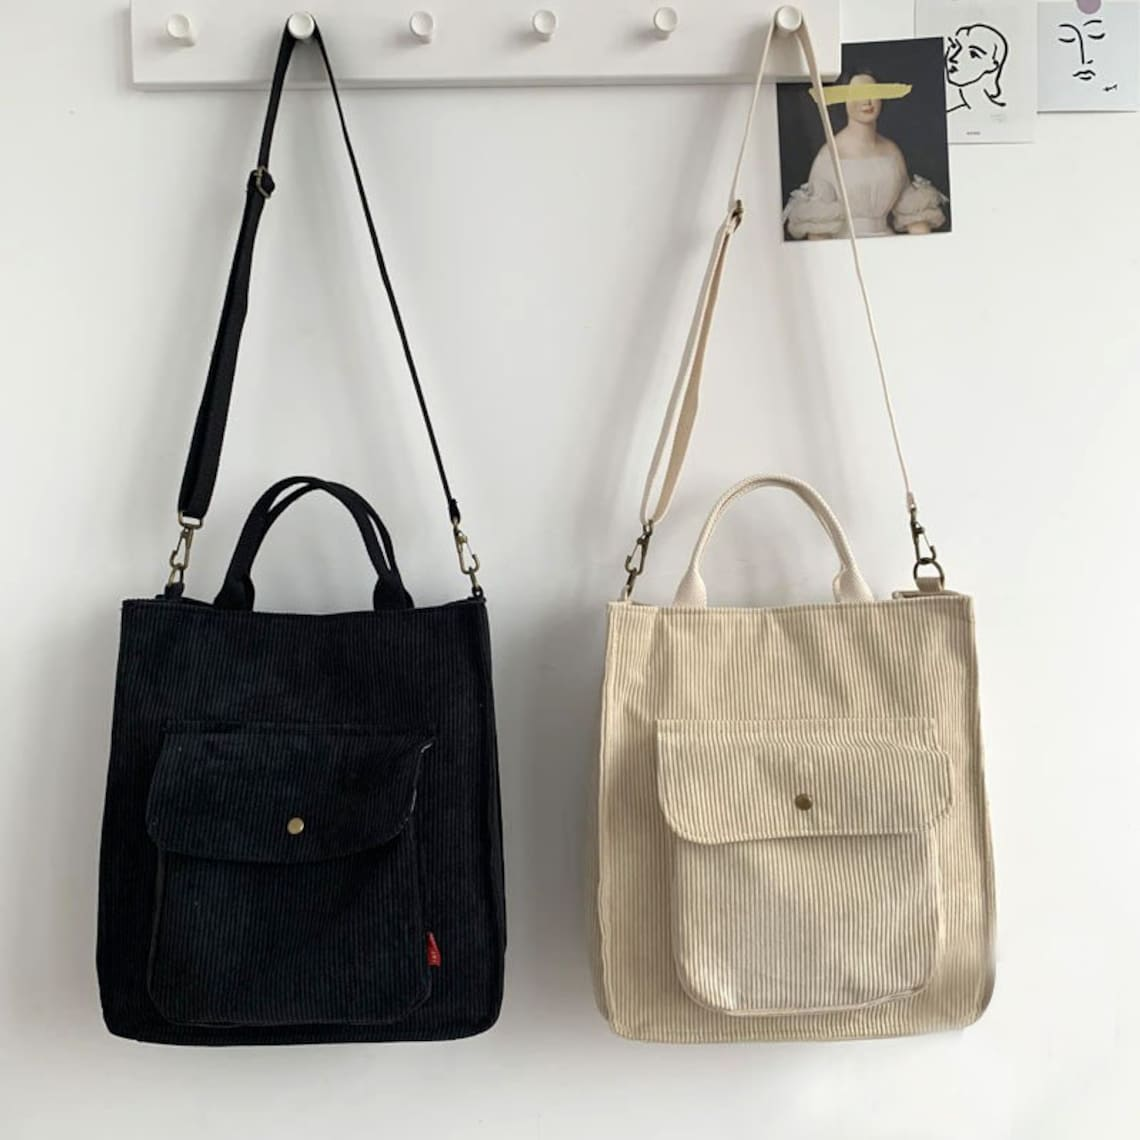 Two tote bags, one black and one cream made in jumbo cord fabric